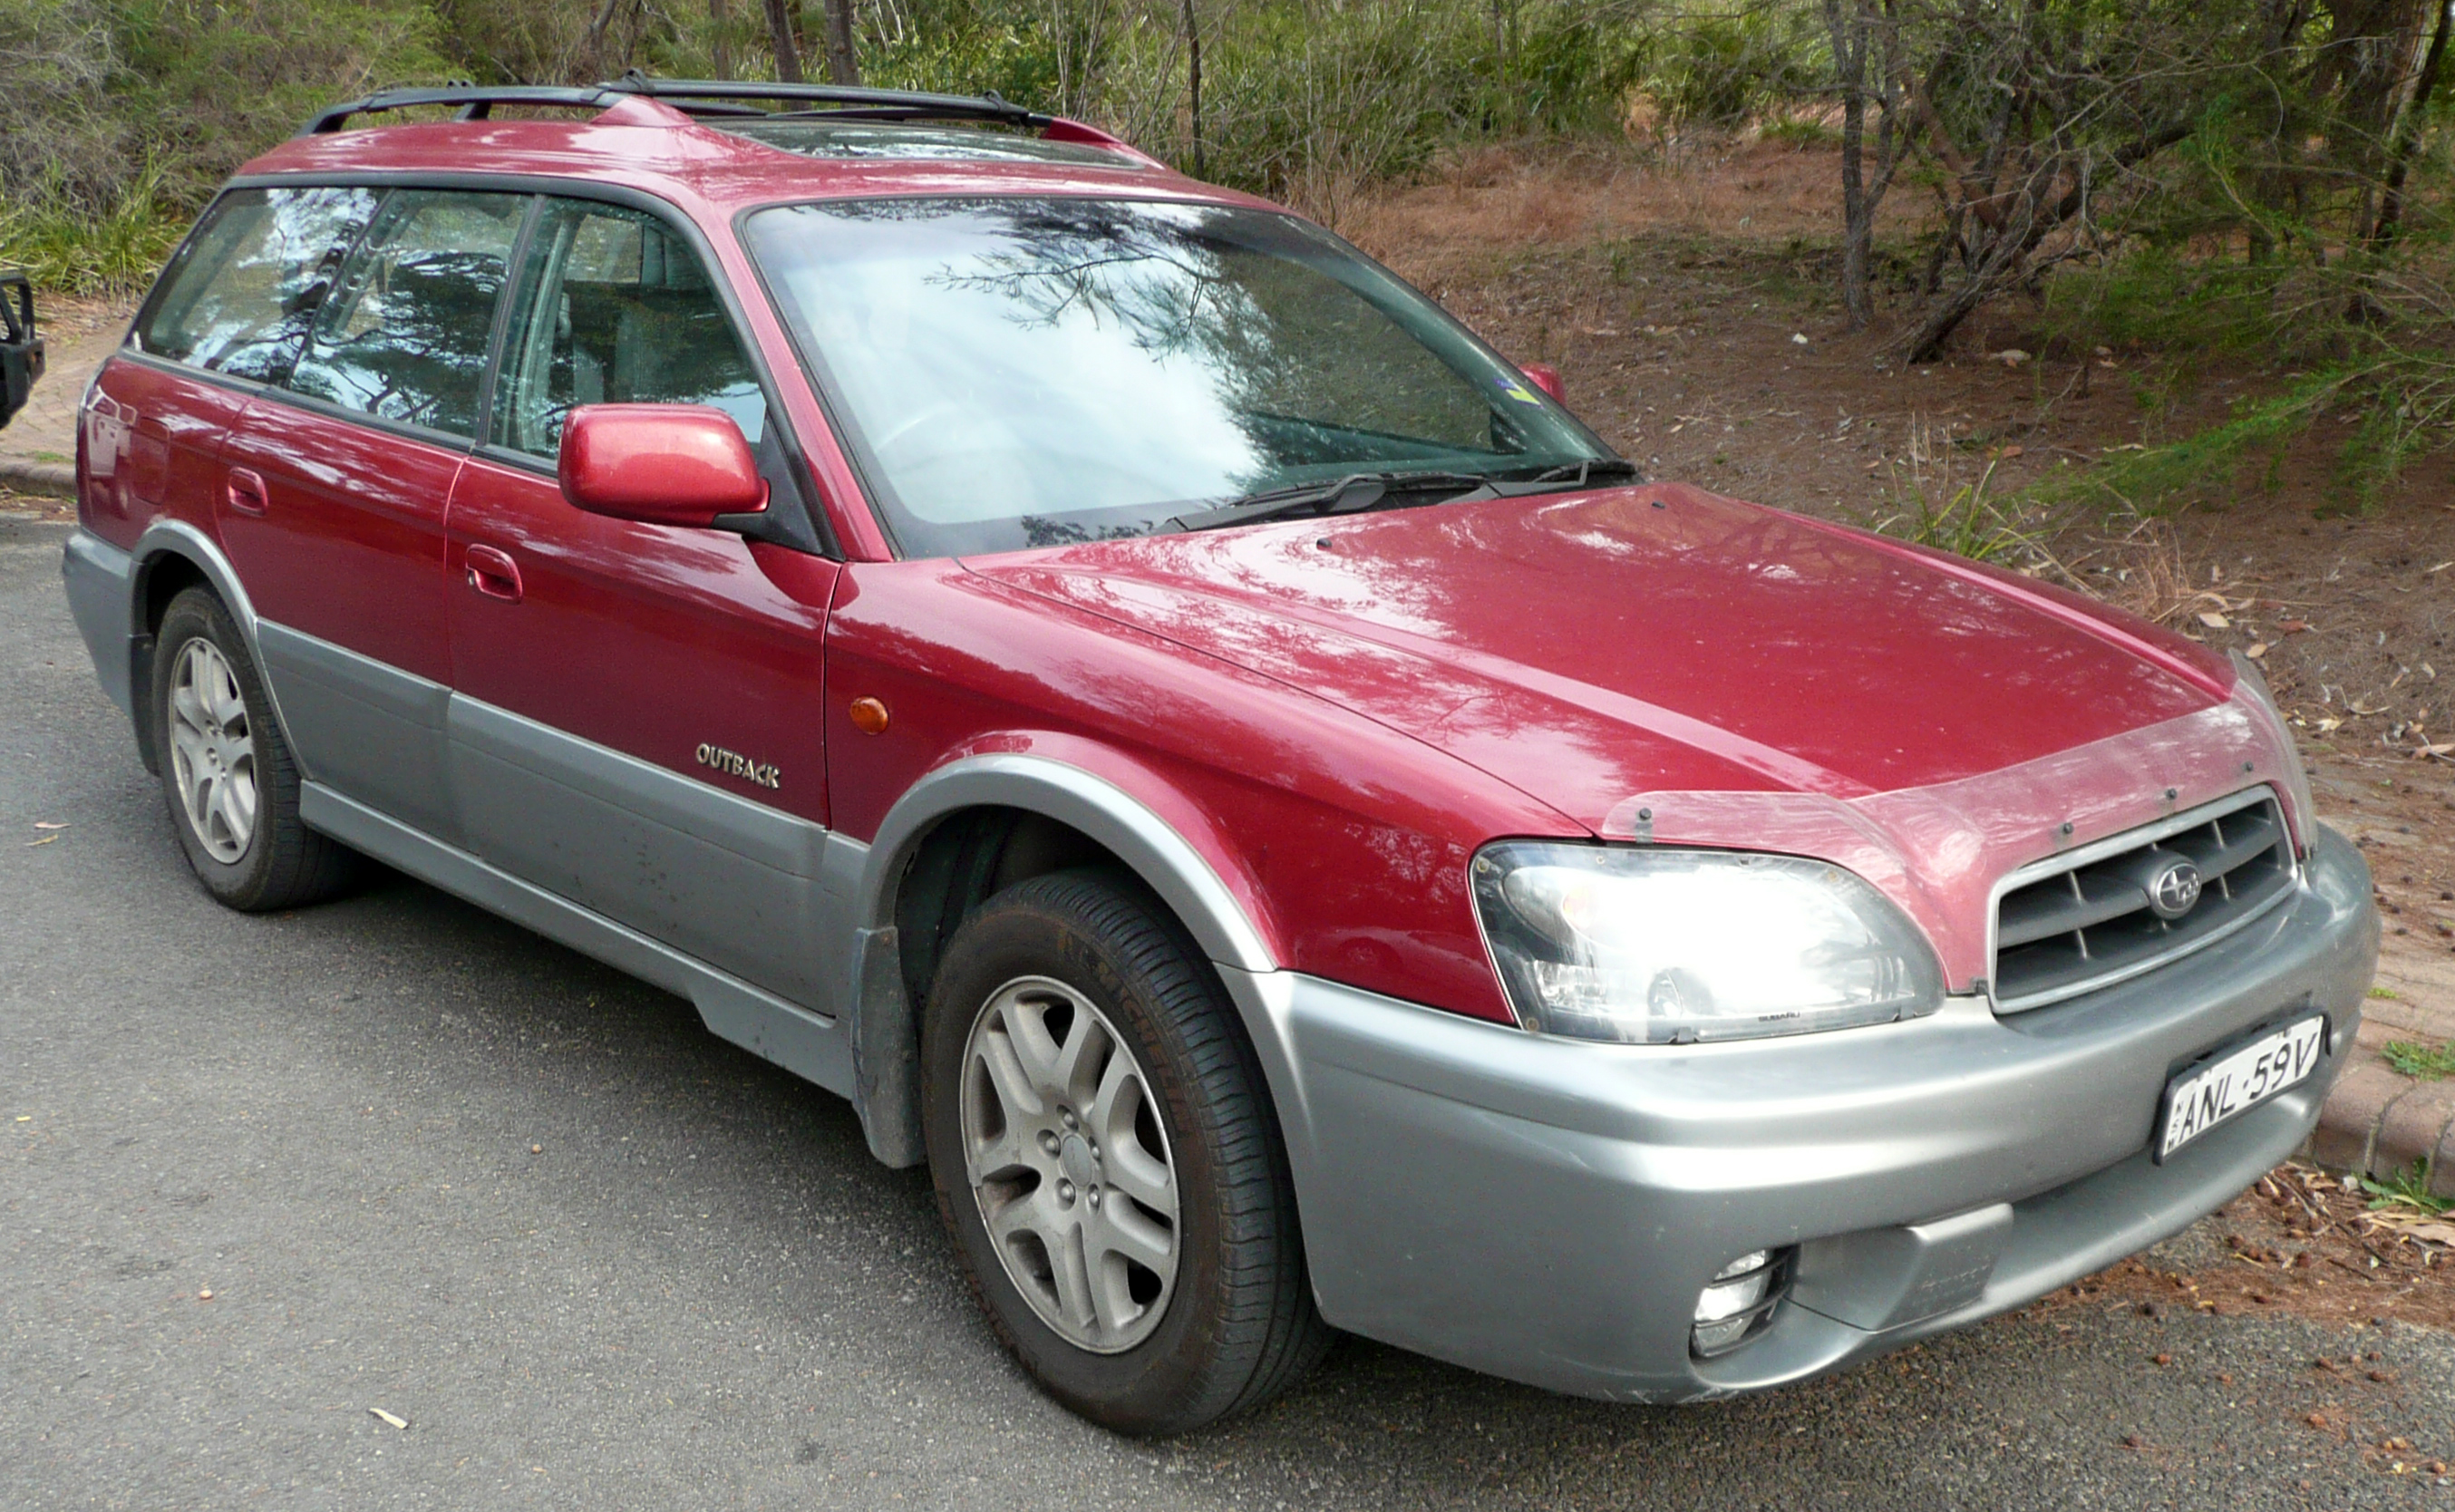 File2003 subaru outback bh9 my03 luxury station wagon 2009 09 file2003 subaru outback bh9 my03 luxury station wagon 2009 09 vanachro Image collections